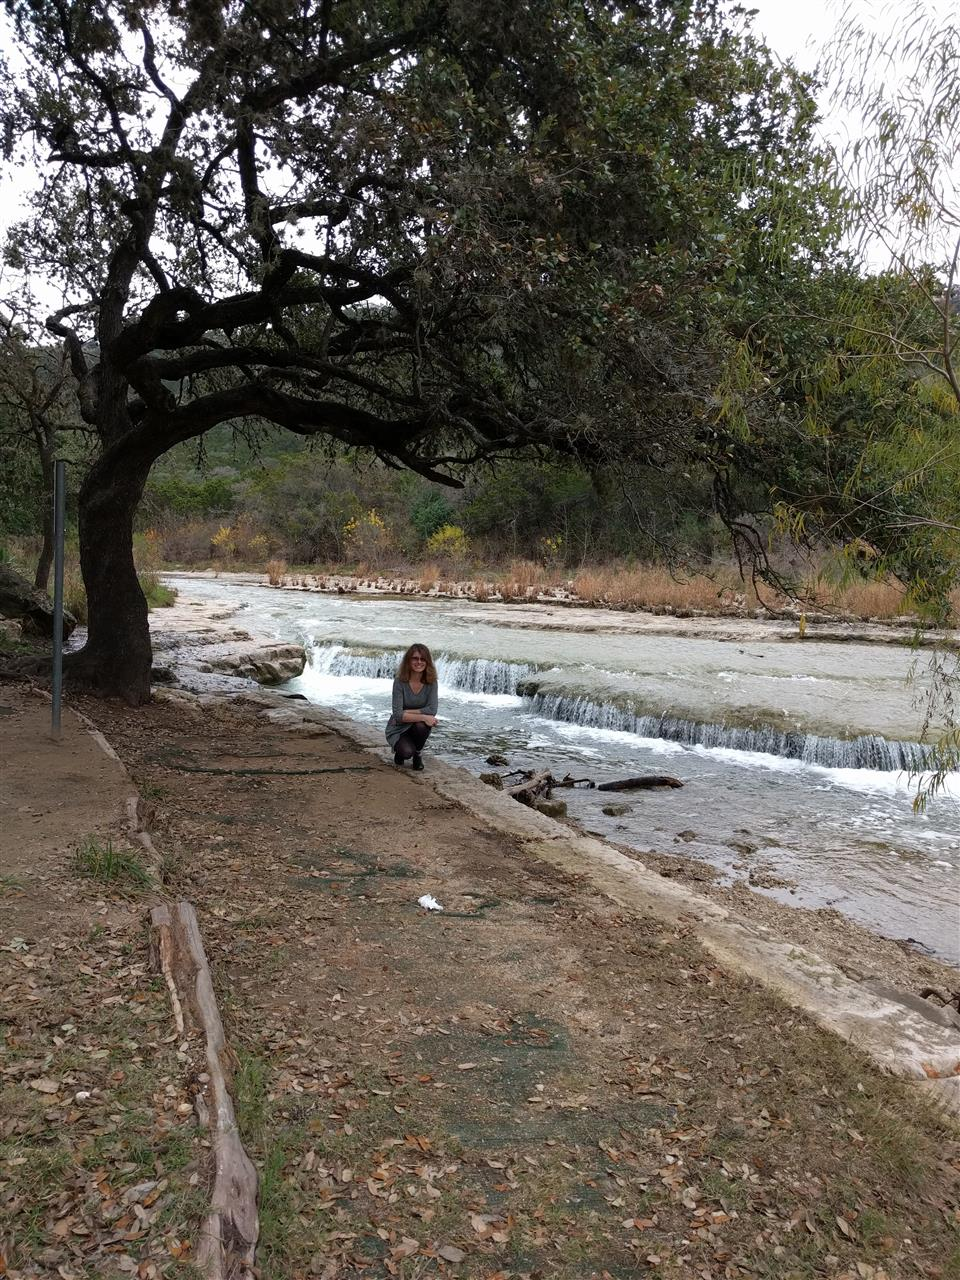 Me on the banks of Bull Creek